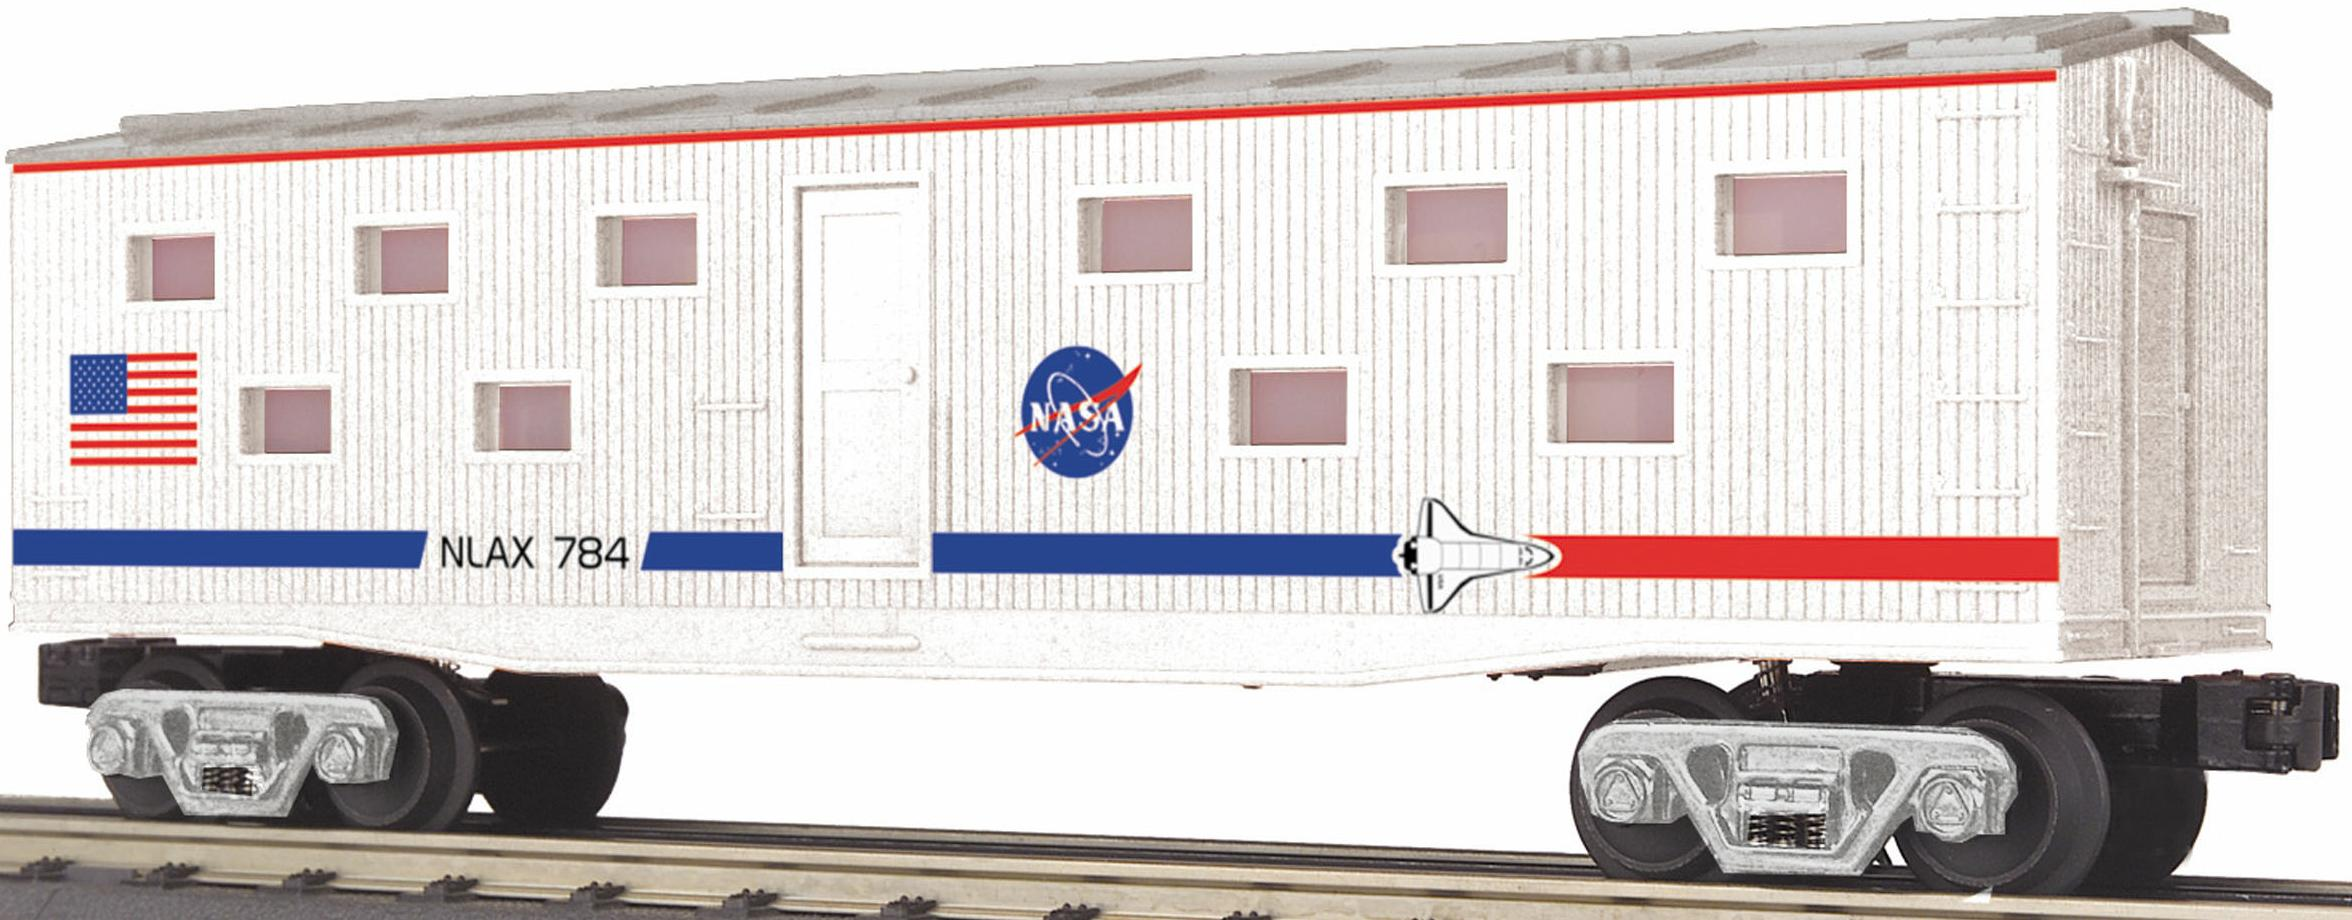 NASA Bunk Car image